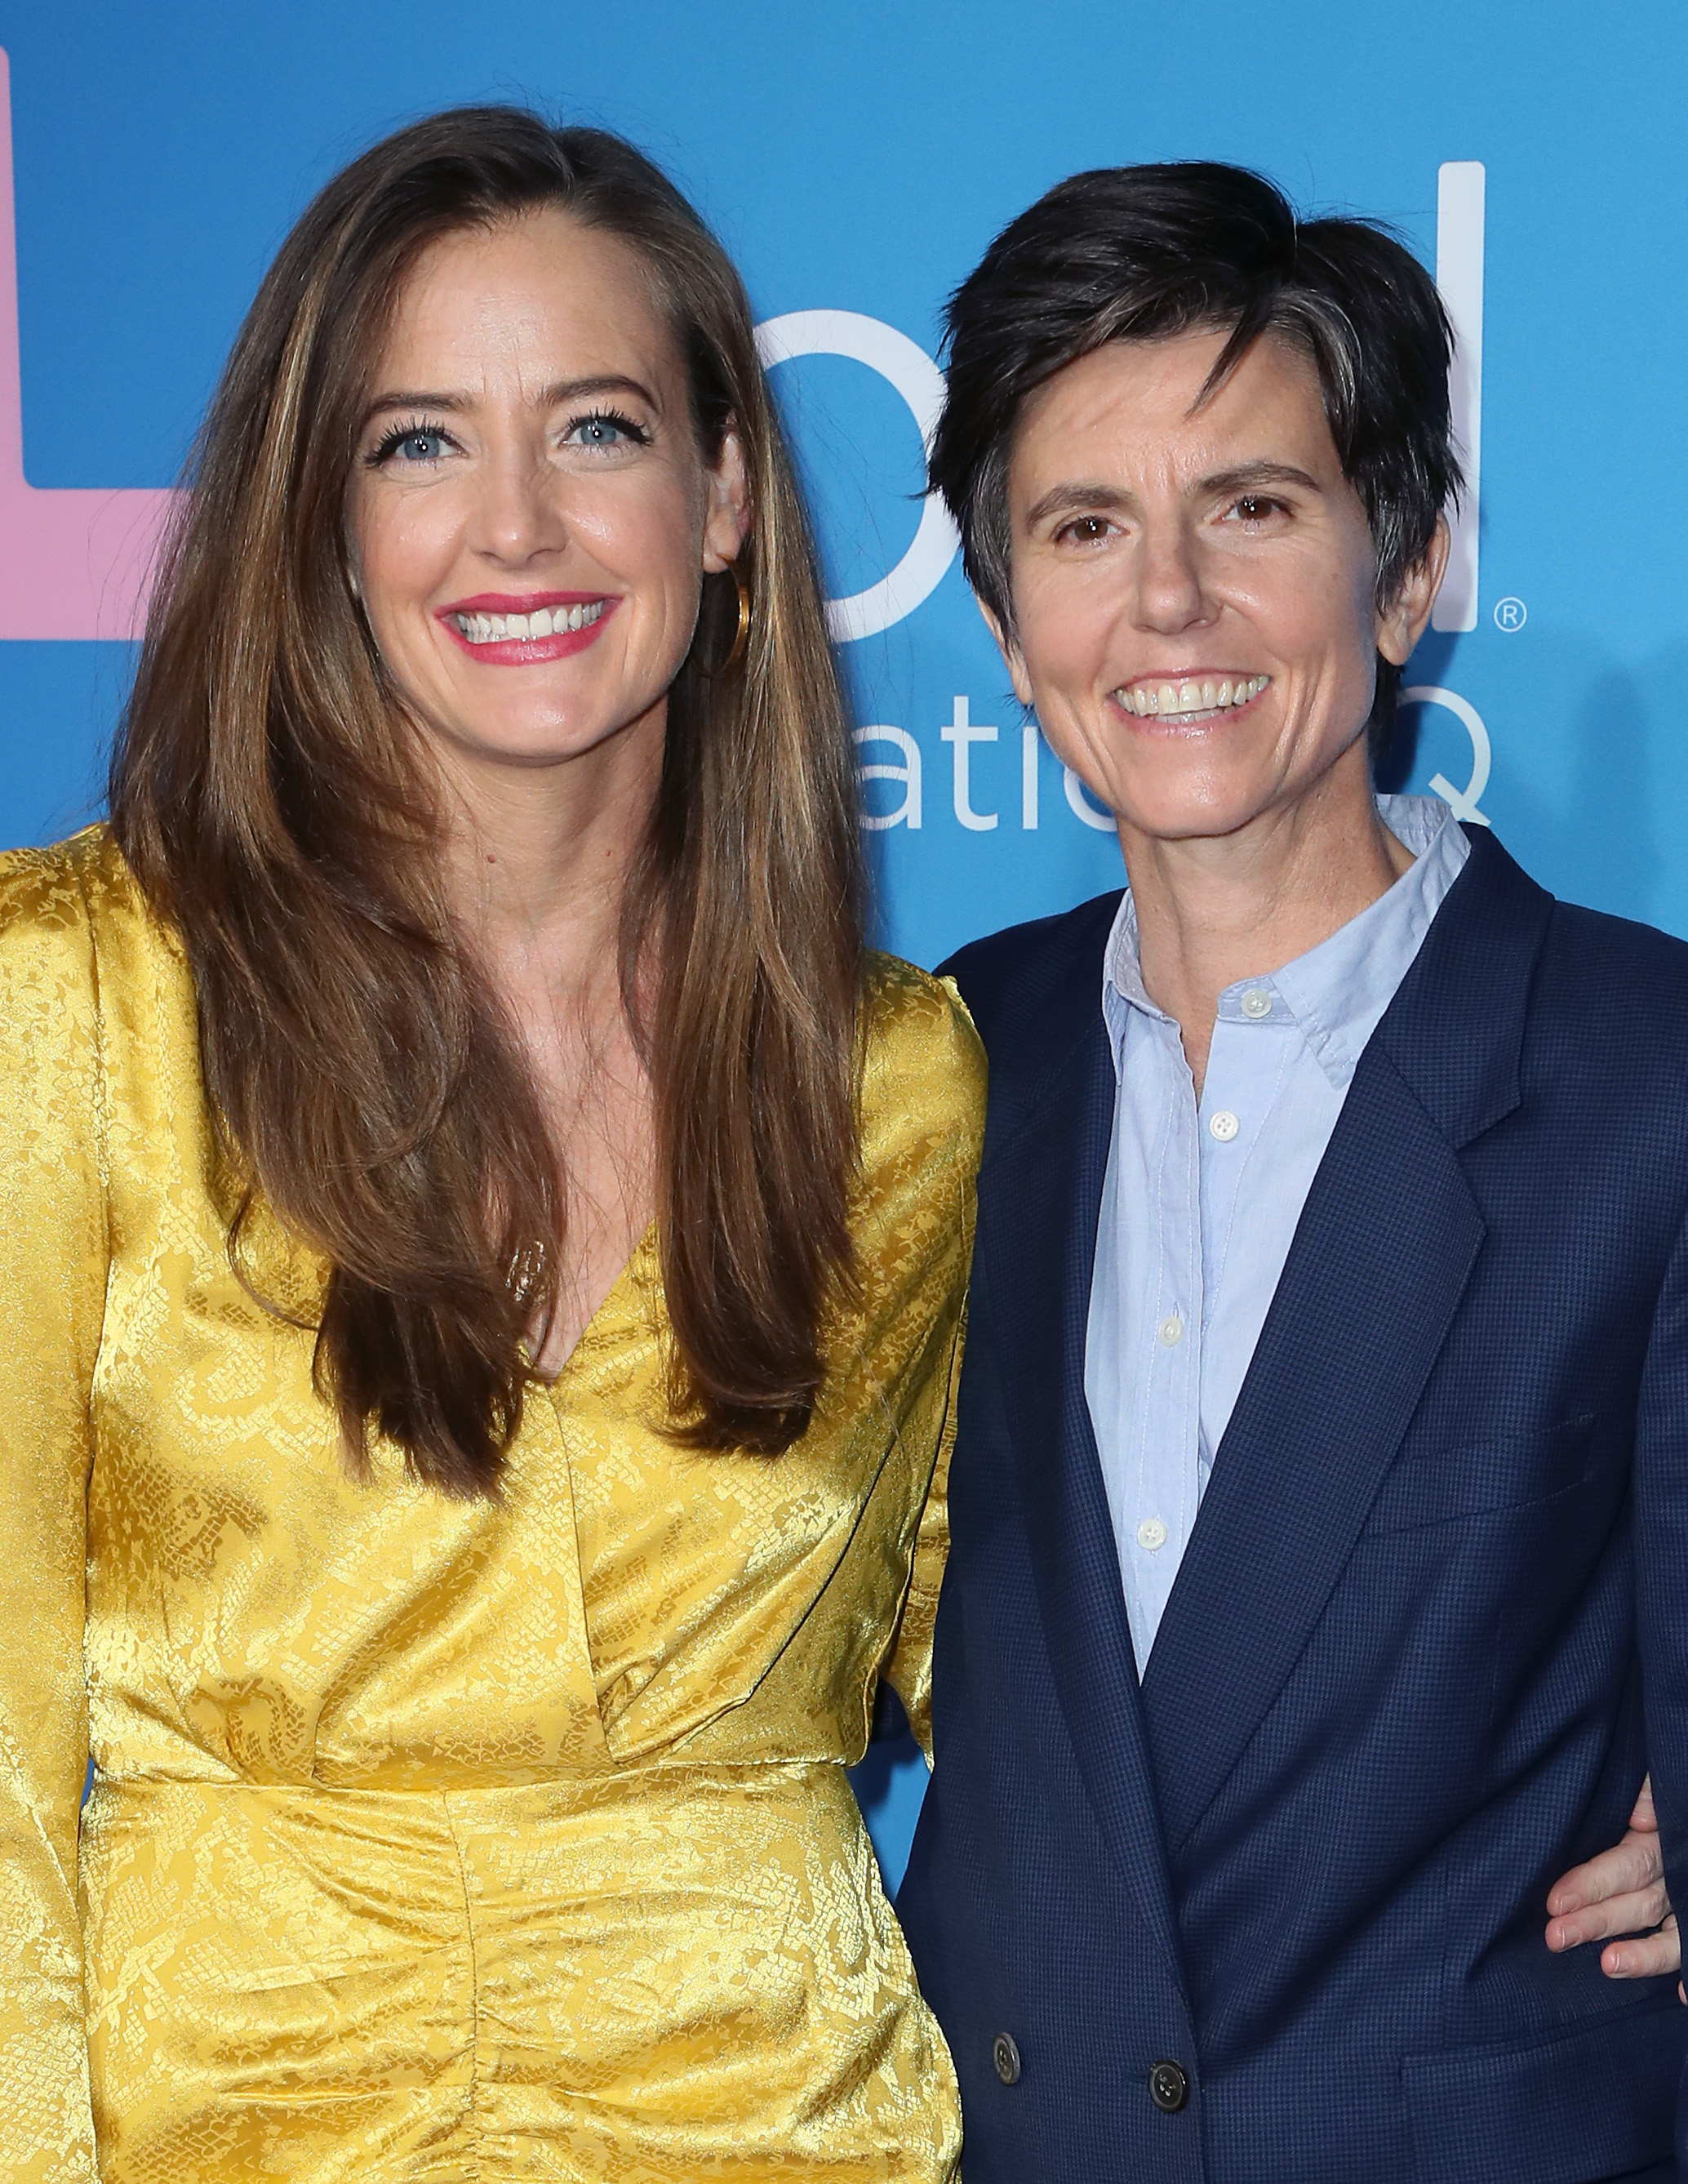 Tig Notaro and Stephanie Allynne at an event for The L Word: Generation Q (2019)